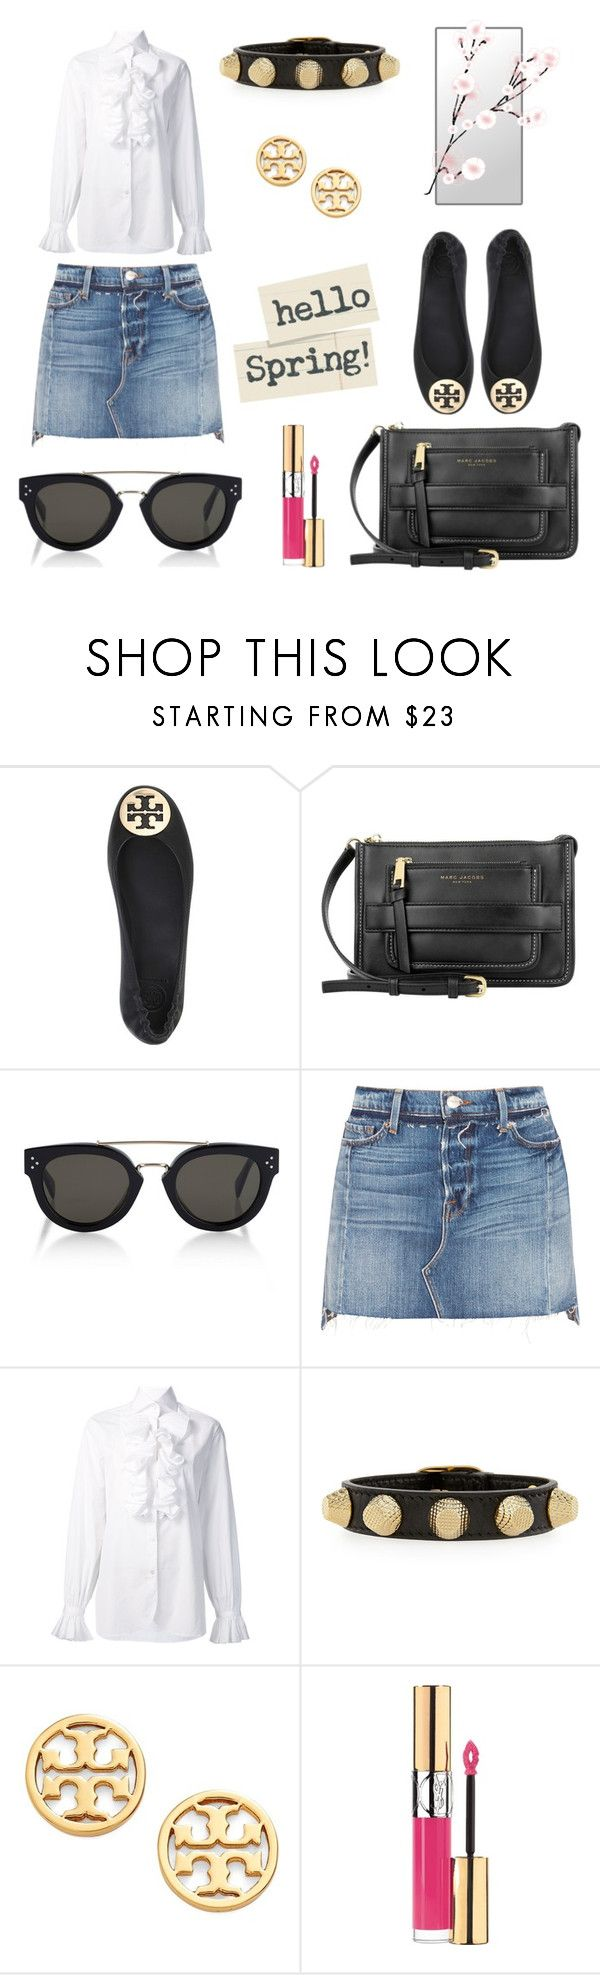 """""""Hello spring"""" by majahellstrom on Polyvore featuring Tory Burch, Marc Jacobs, CÉLINE, Frame, Ralph Lauren, Balenciaga and Yves Saint Laurent"""